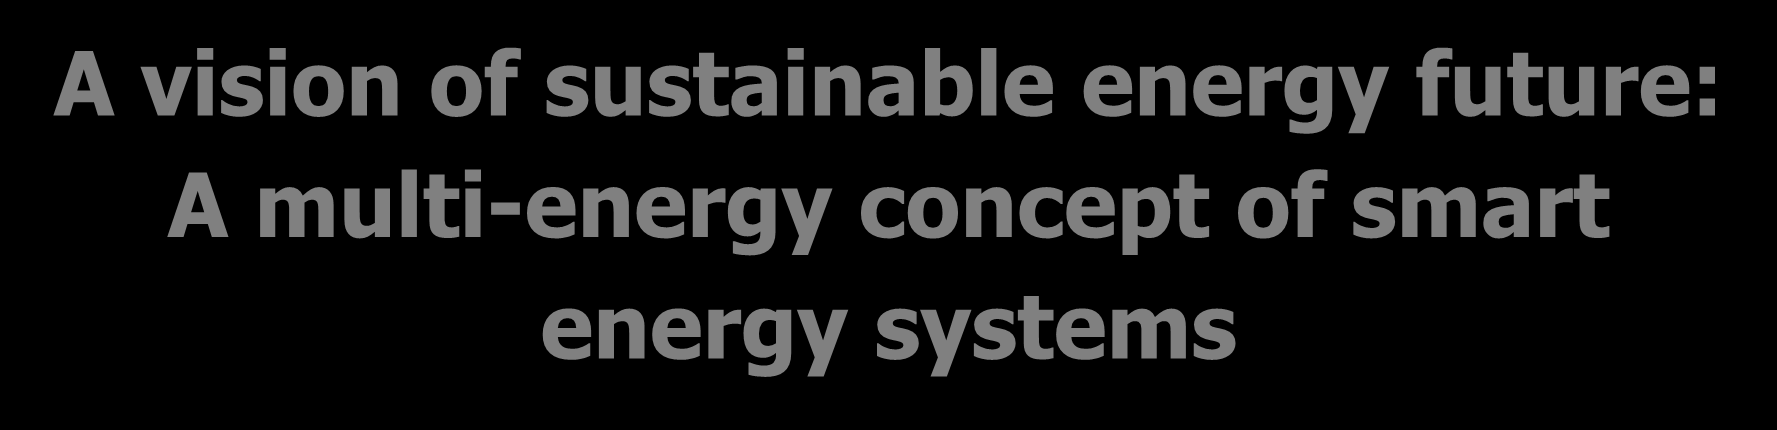 A vision of sustainable energy future: A multi-energy concept